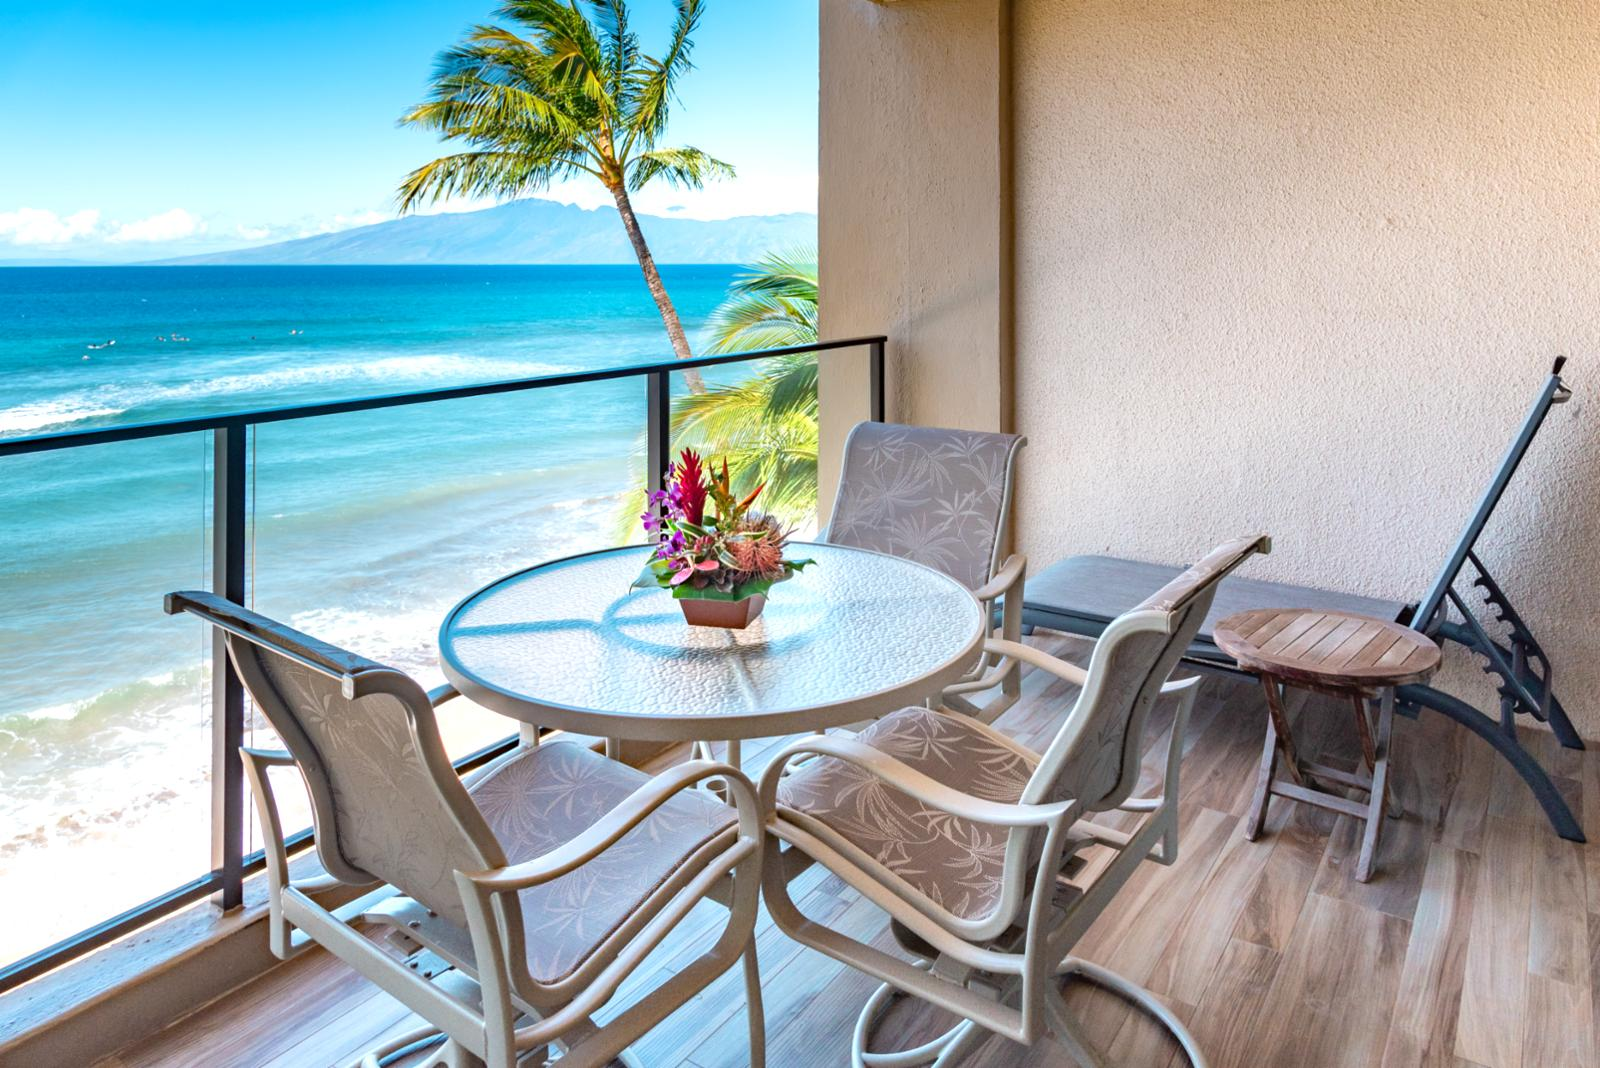 Upgraded flooring and alluring aqua marine views, this is Maui!